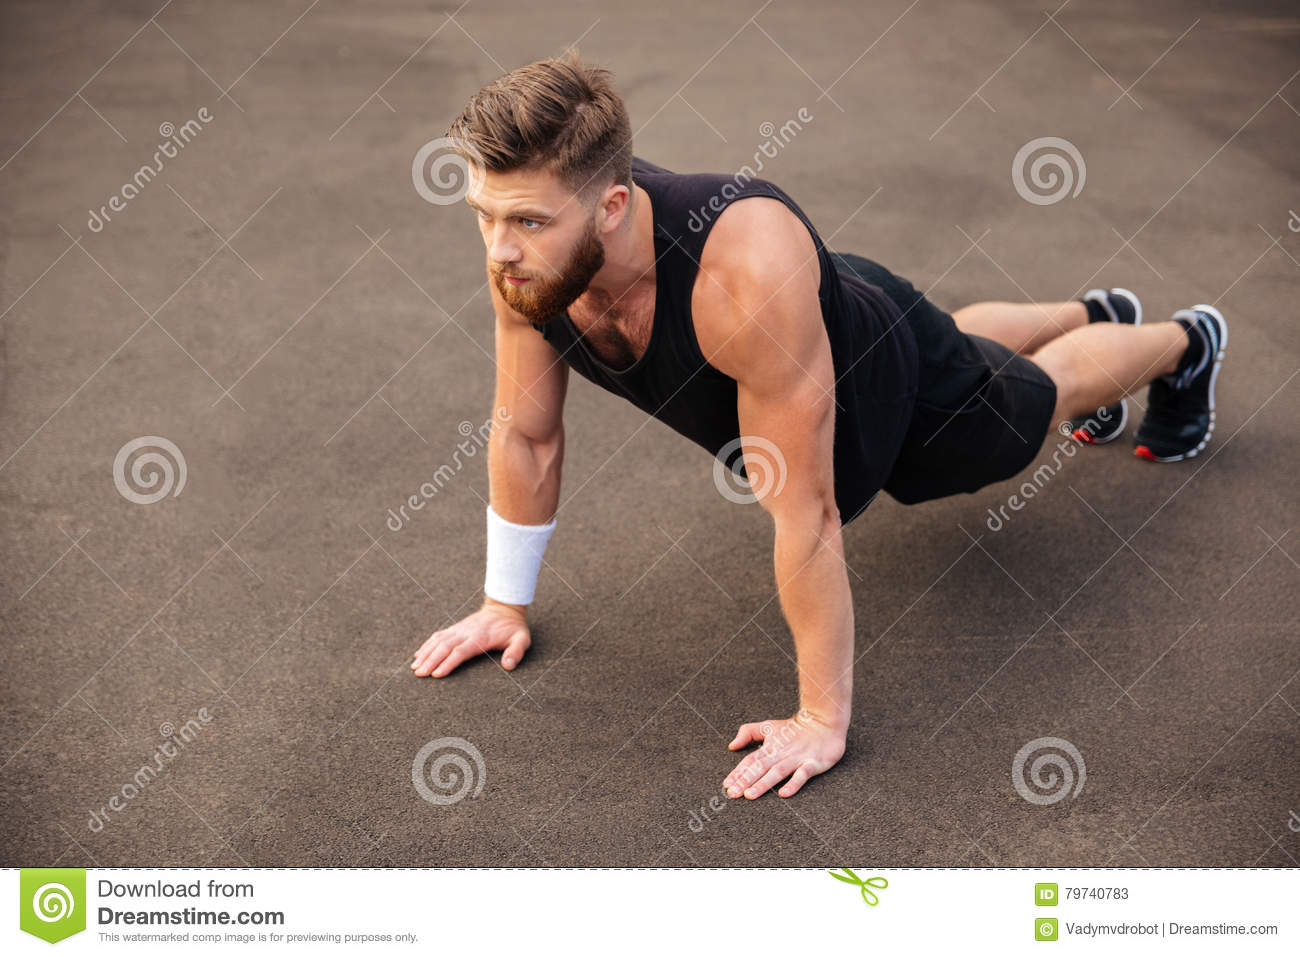 Handsome young man athlete training and doing plank exercise outdoors